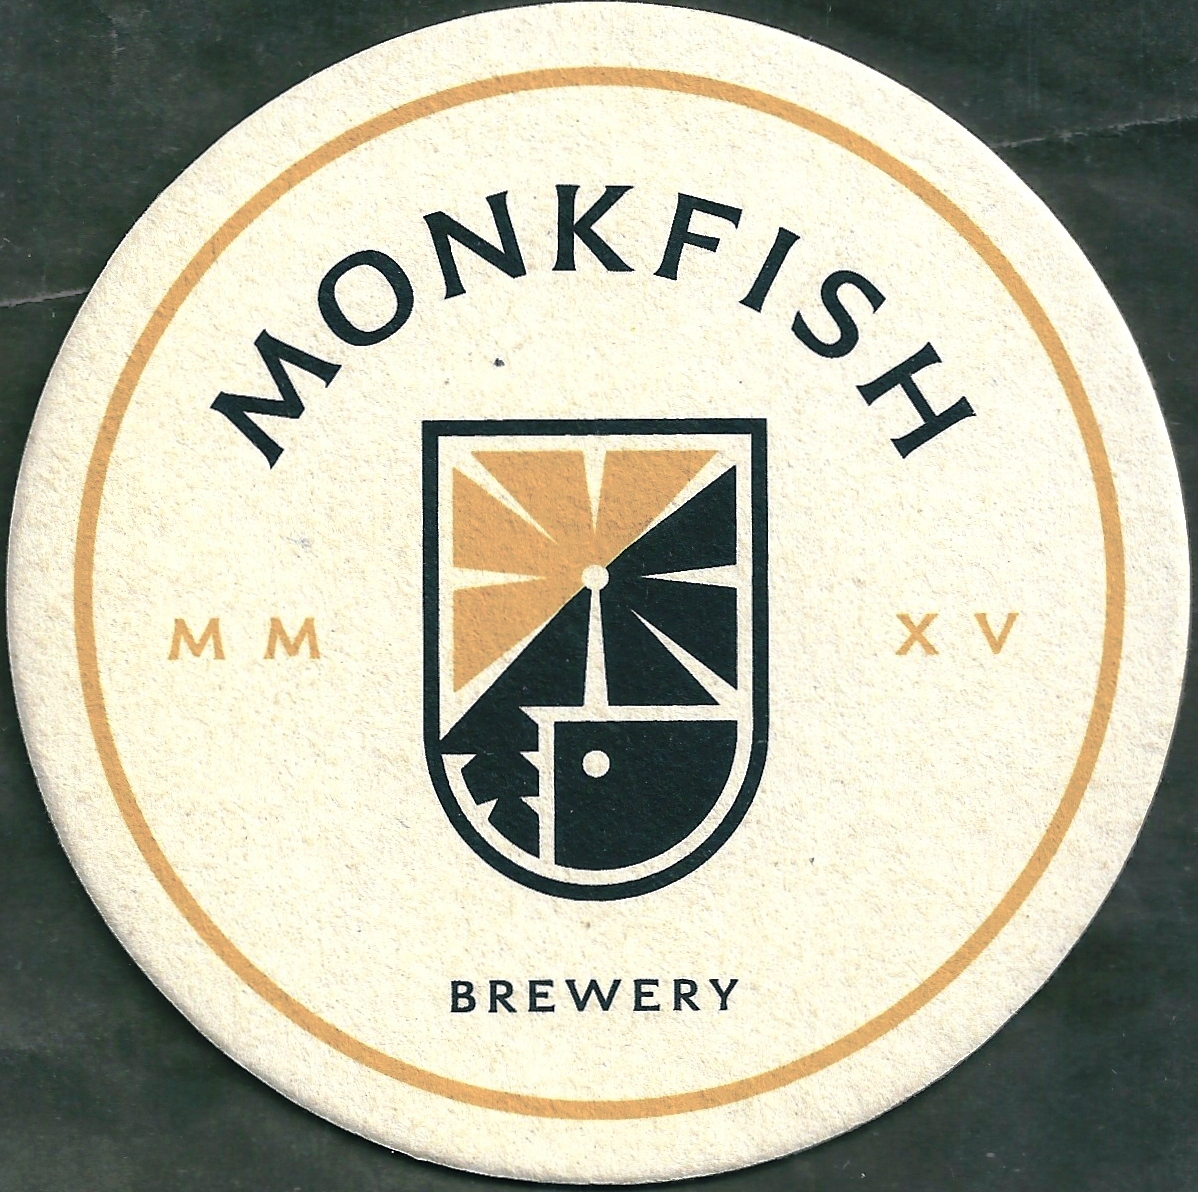 Monkfish Brewery г. Самара (ООО Монкфиш)